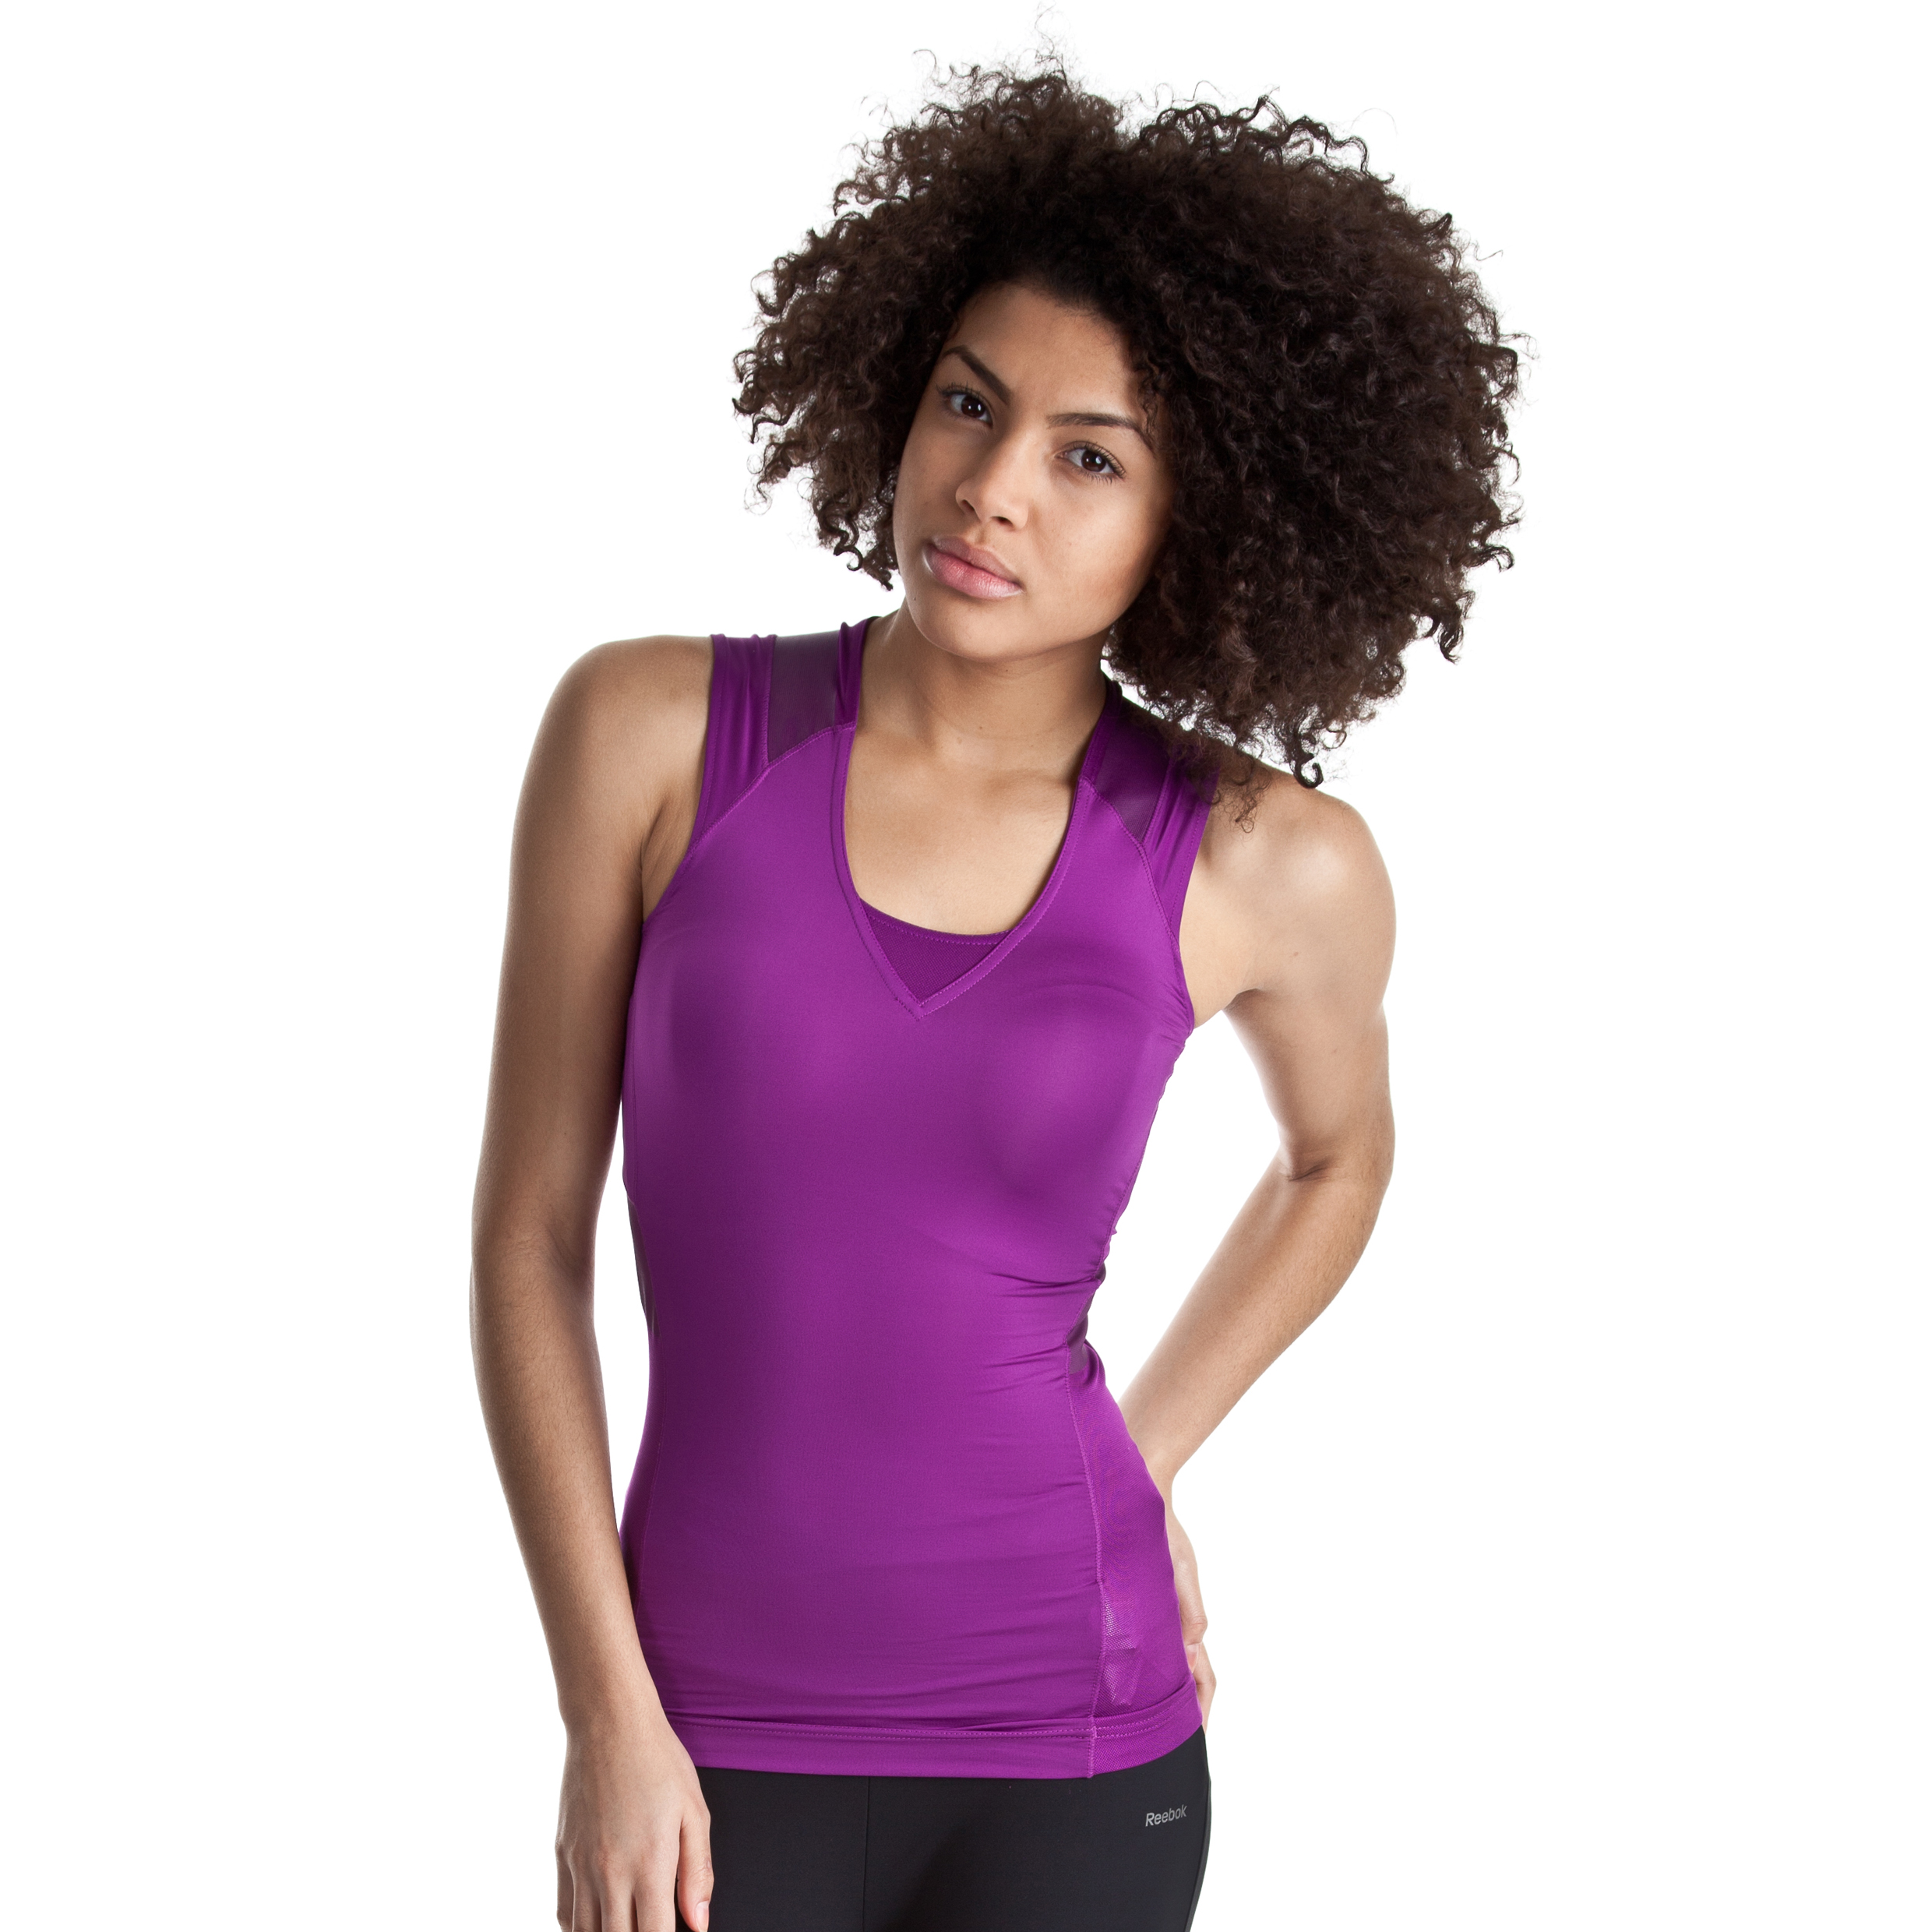 Reebok EasyTone Cotton V-Neck Tank - Aubergine - Women